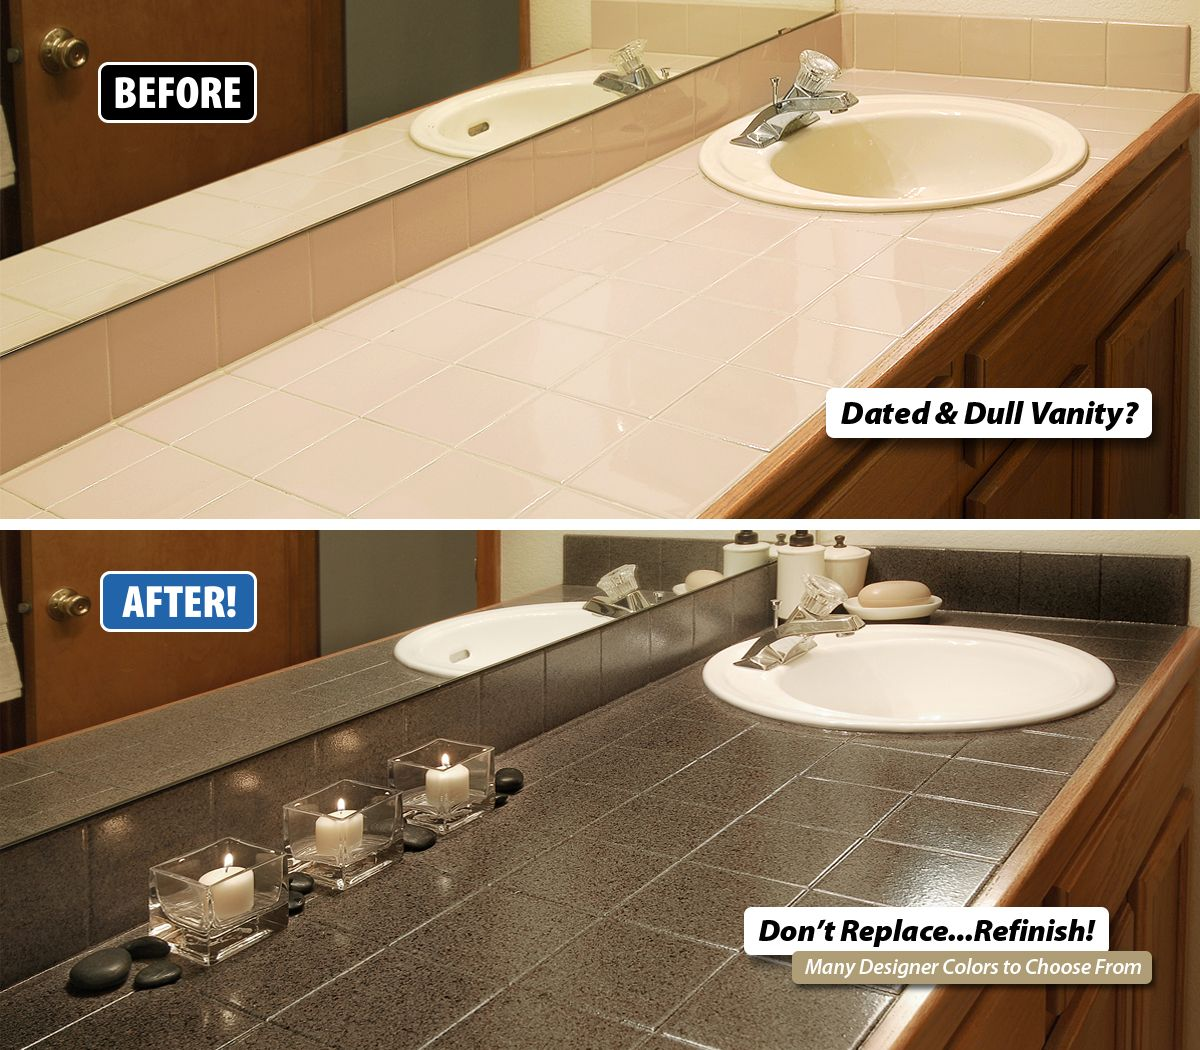 do you have a dated and dull vanity? whether it's tile